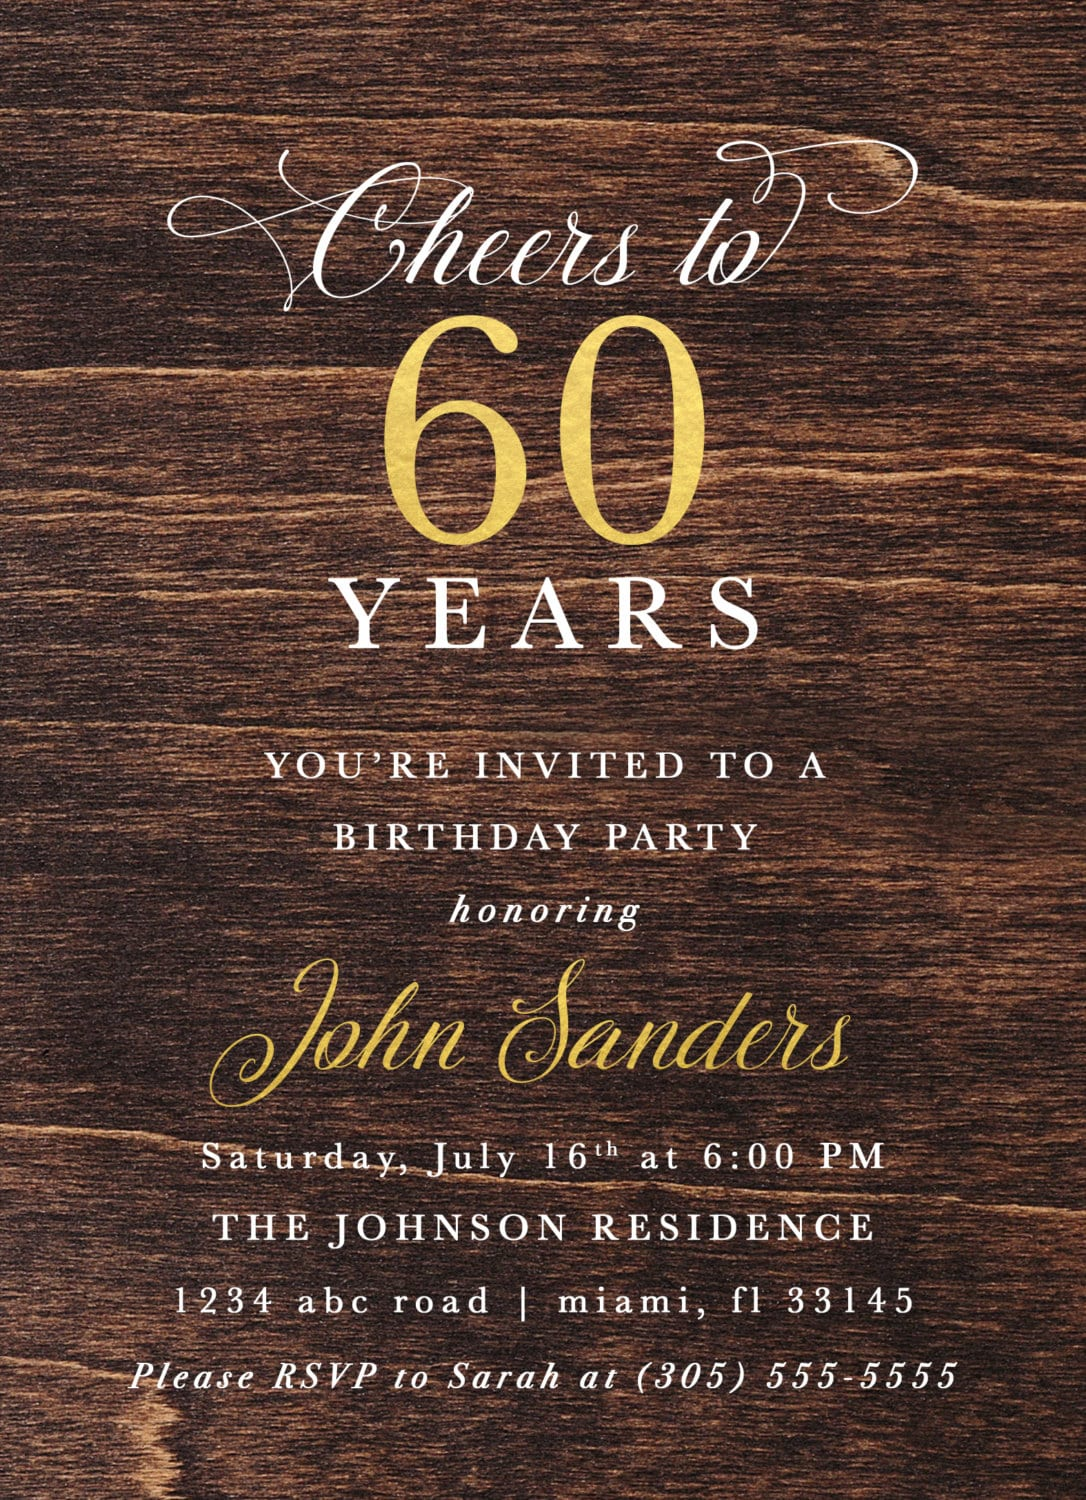 60th Birthday Dark Wood Gold Foil Male Invitation Adult Cheers To 50 60 80 Years Cigar Man Printed Printable Invite